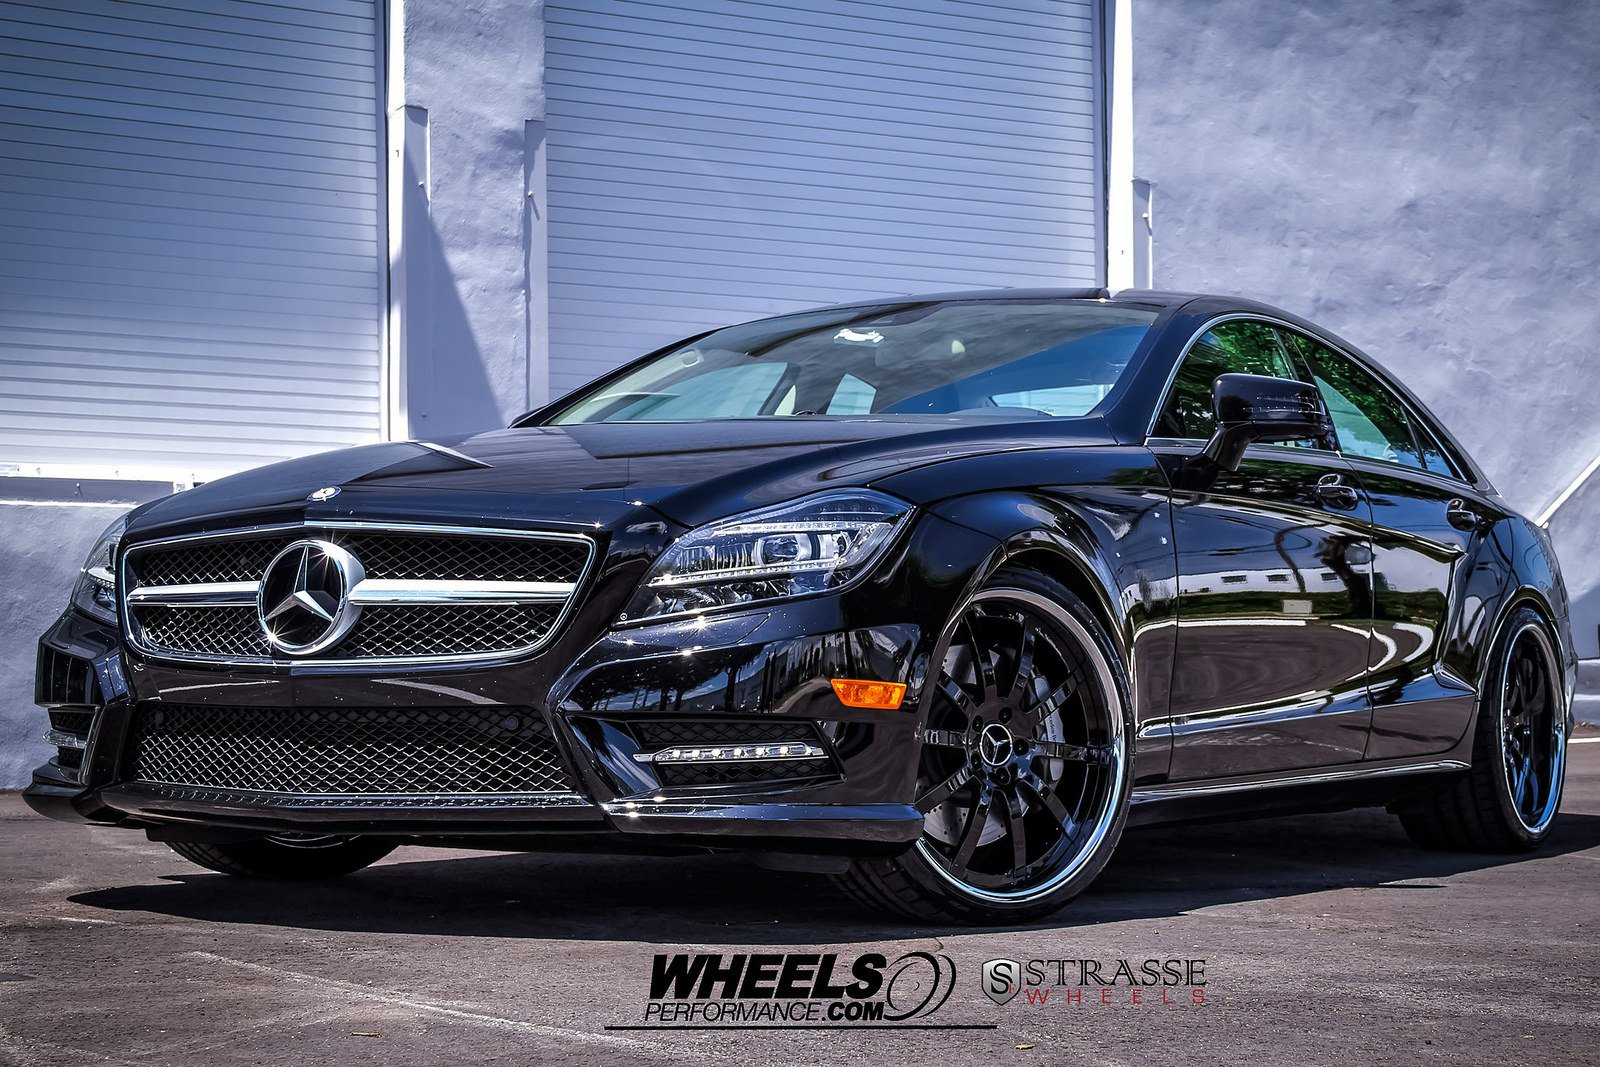 Mercedes Benz Wheels >> Mercedes CLS550 Strasse Wheels tuning cars black wallpaper | 1600x1067 | 390183 | WallpaperUP